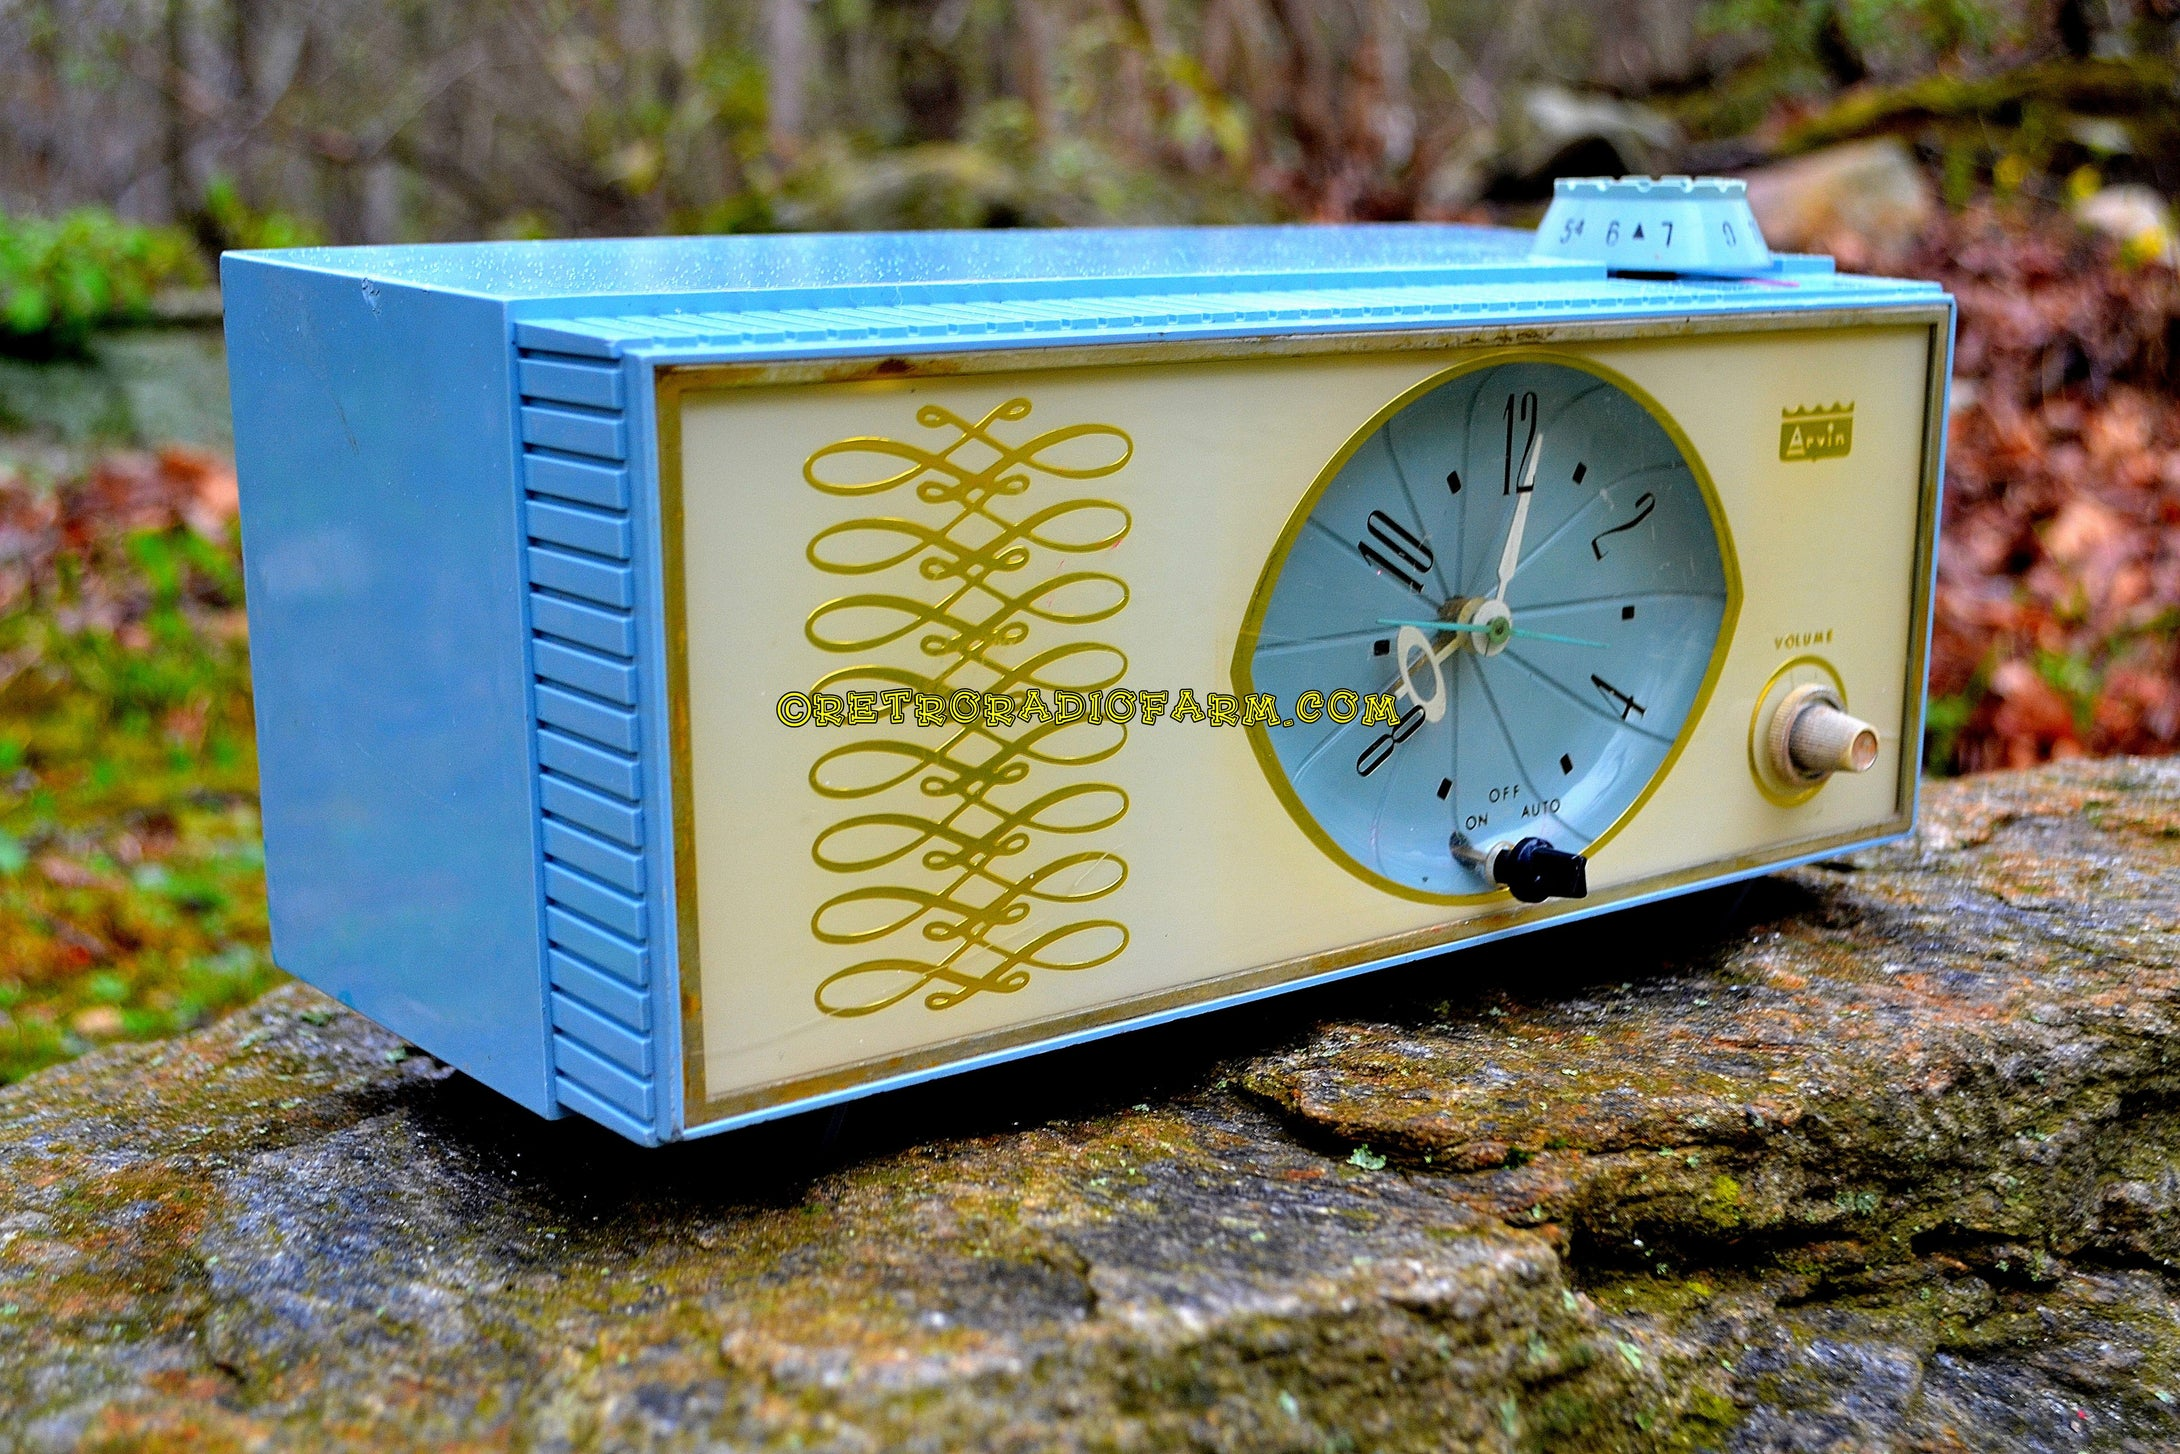 SOLD! - July 8, 2018 - WEDGEWOOD BLUE Retro Mid Century Vintage 1965 Arvin Model 53R05 AM Tube Clock Radio Works Great Looks Great!